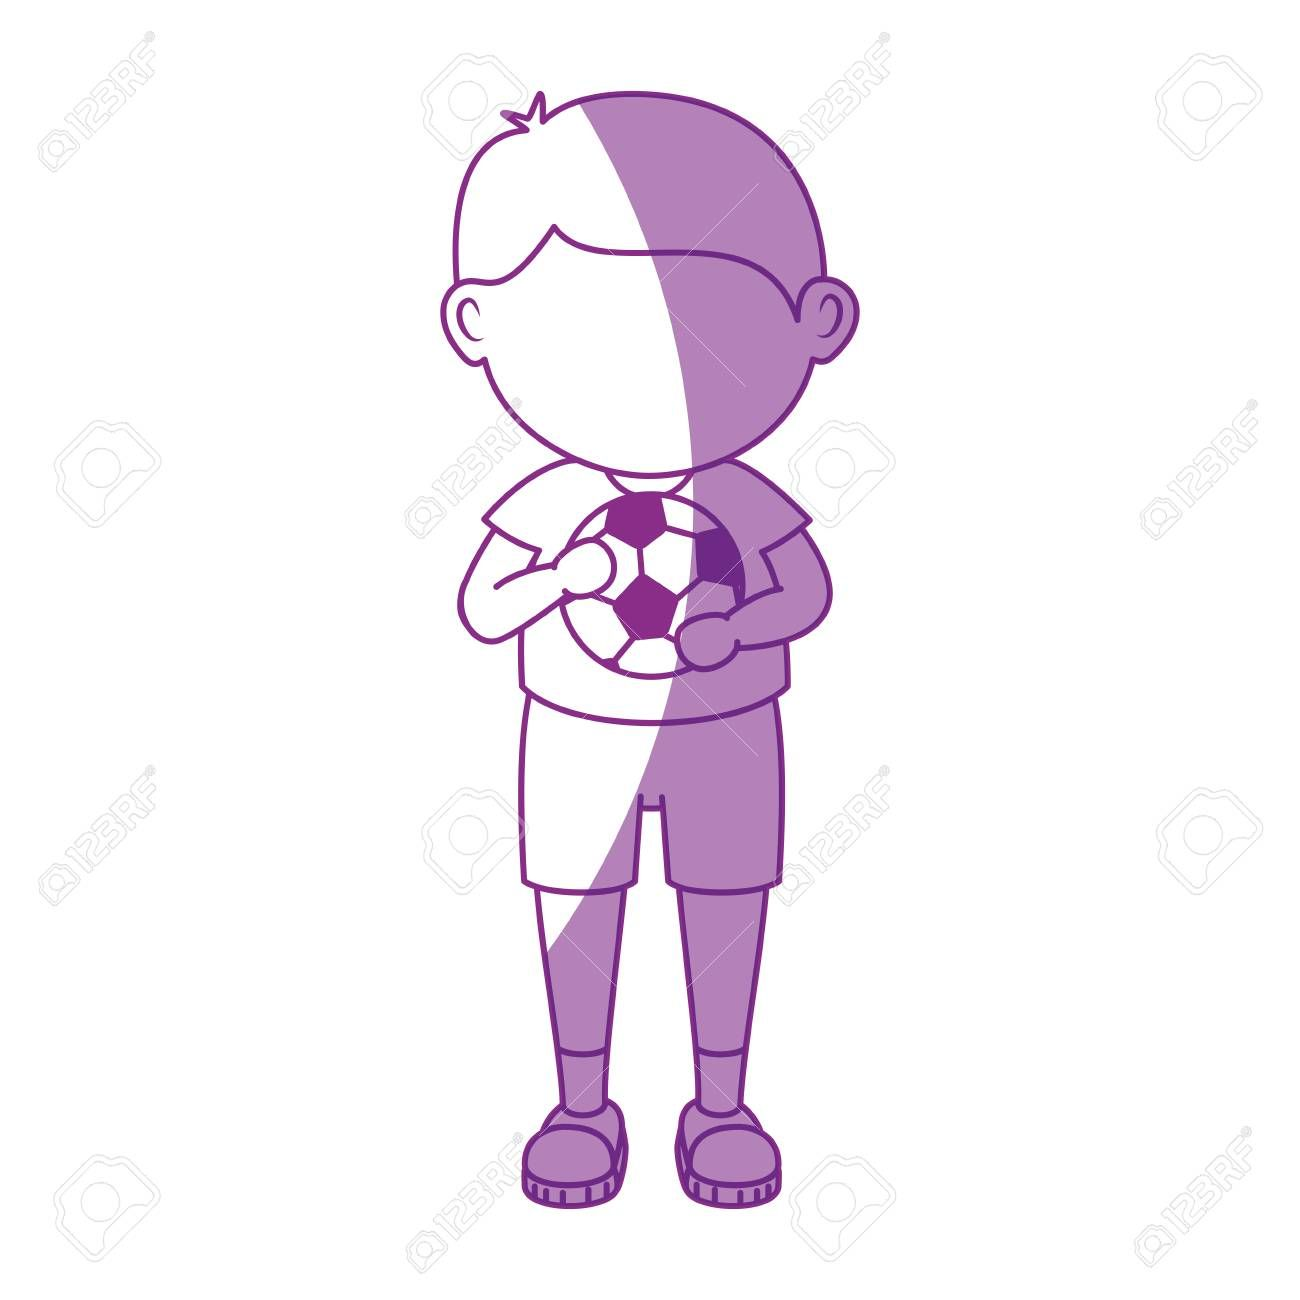 Boy With Soccer Ball Cartoon Icon Vector Illustration Graphic Design Illustration Spo In 2020 Illustration Artwork Drawing Graphic Design Illustration Cartoon Icons